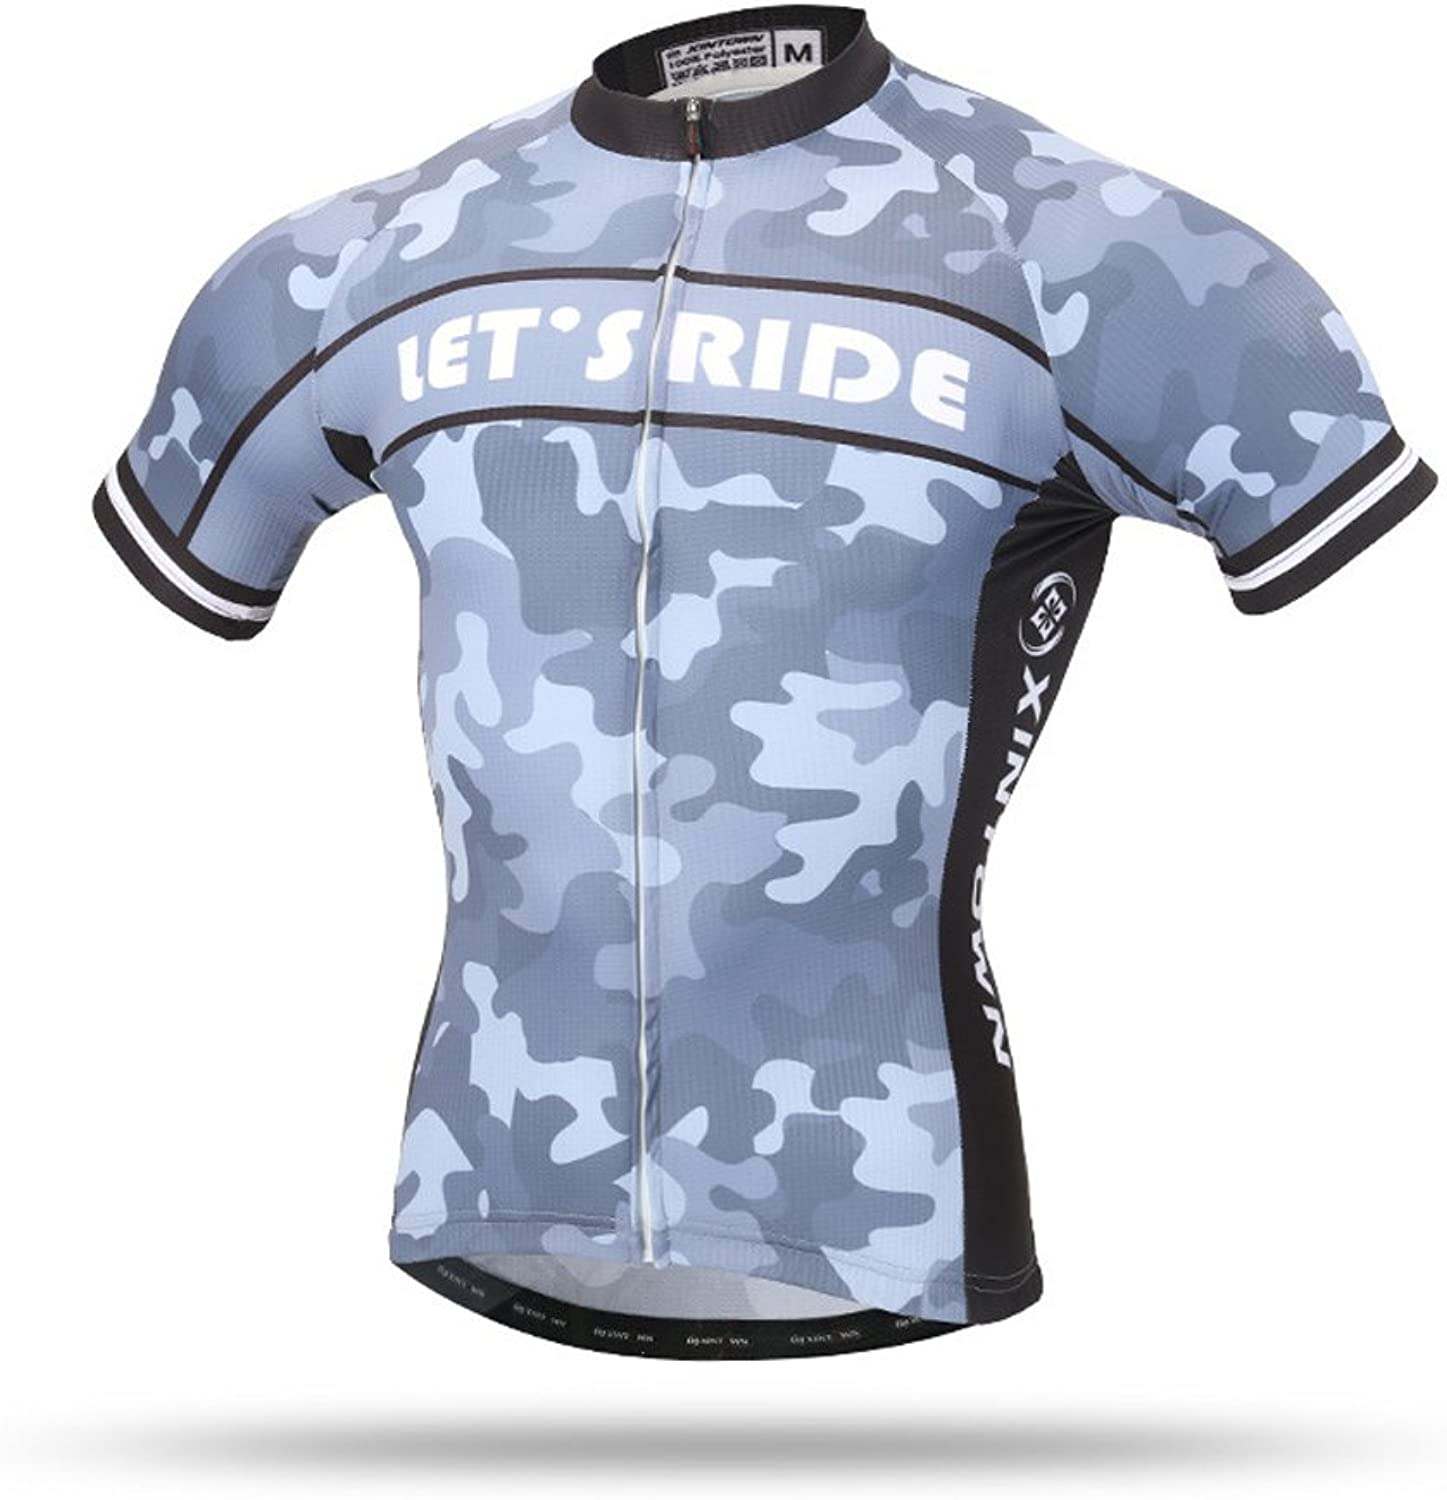 Pinjeer 2018 Summer Sky Camouflage Design Men's Breathable Outdoors Sports Cycling Jersey Clothing,Quick Dry Team Bike Jersey Men Short Sleeve Shirt (Size   M)